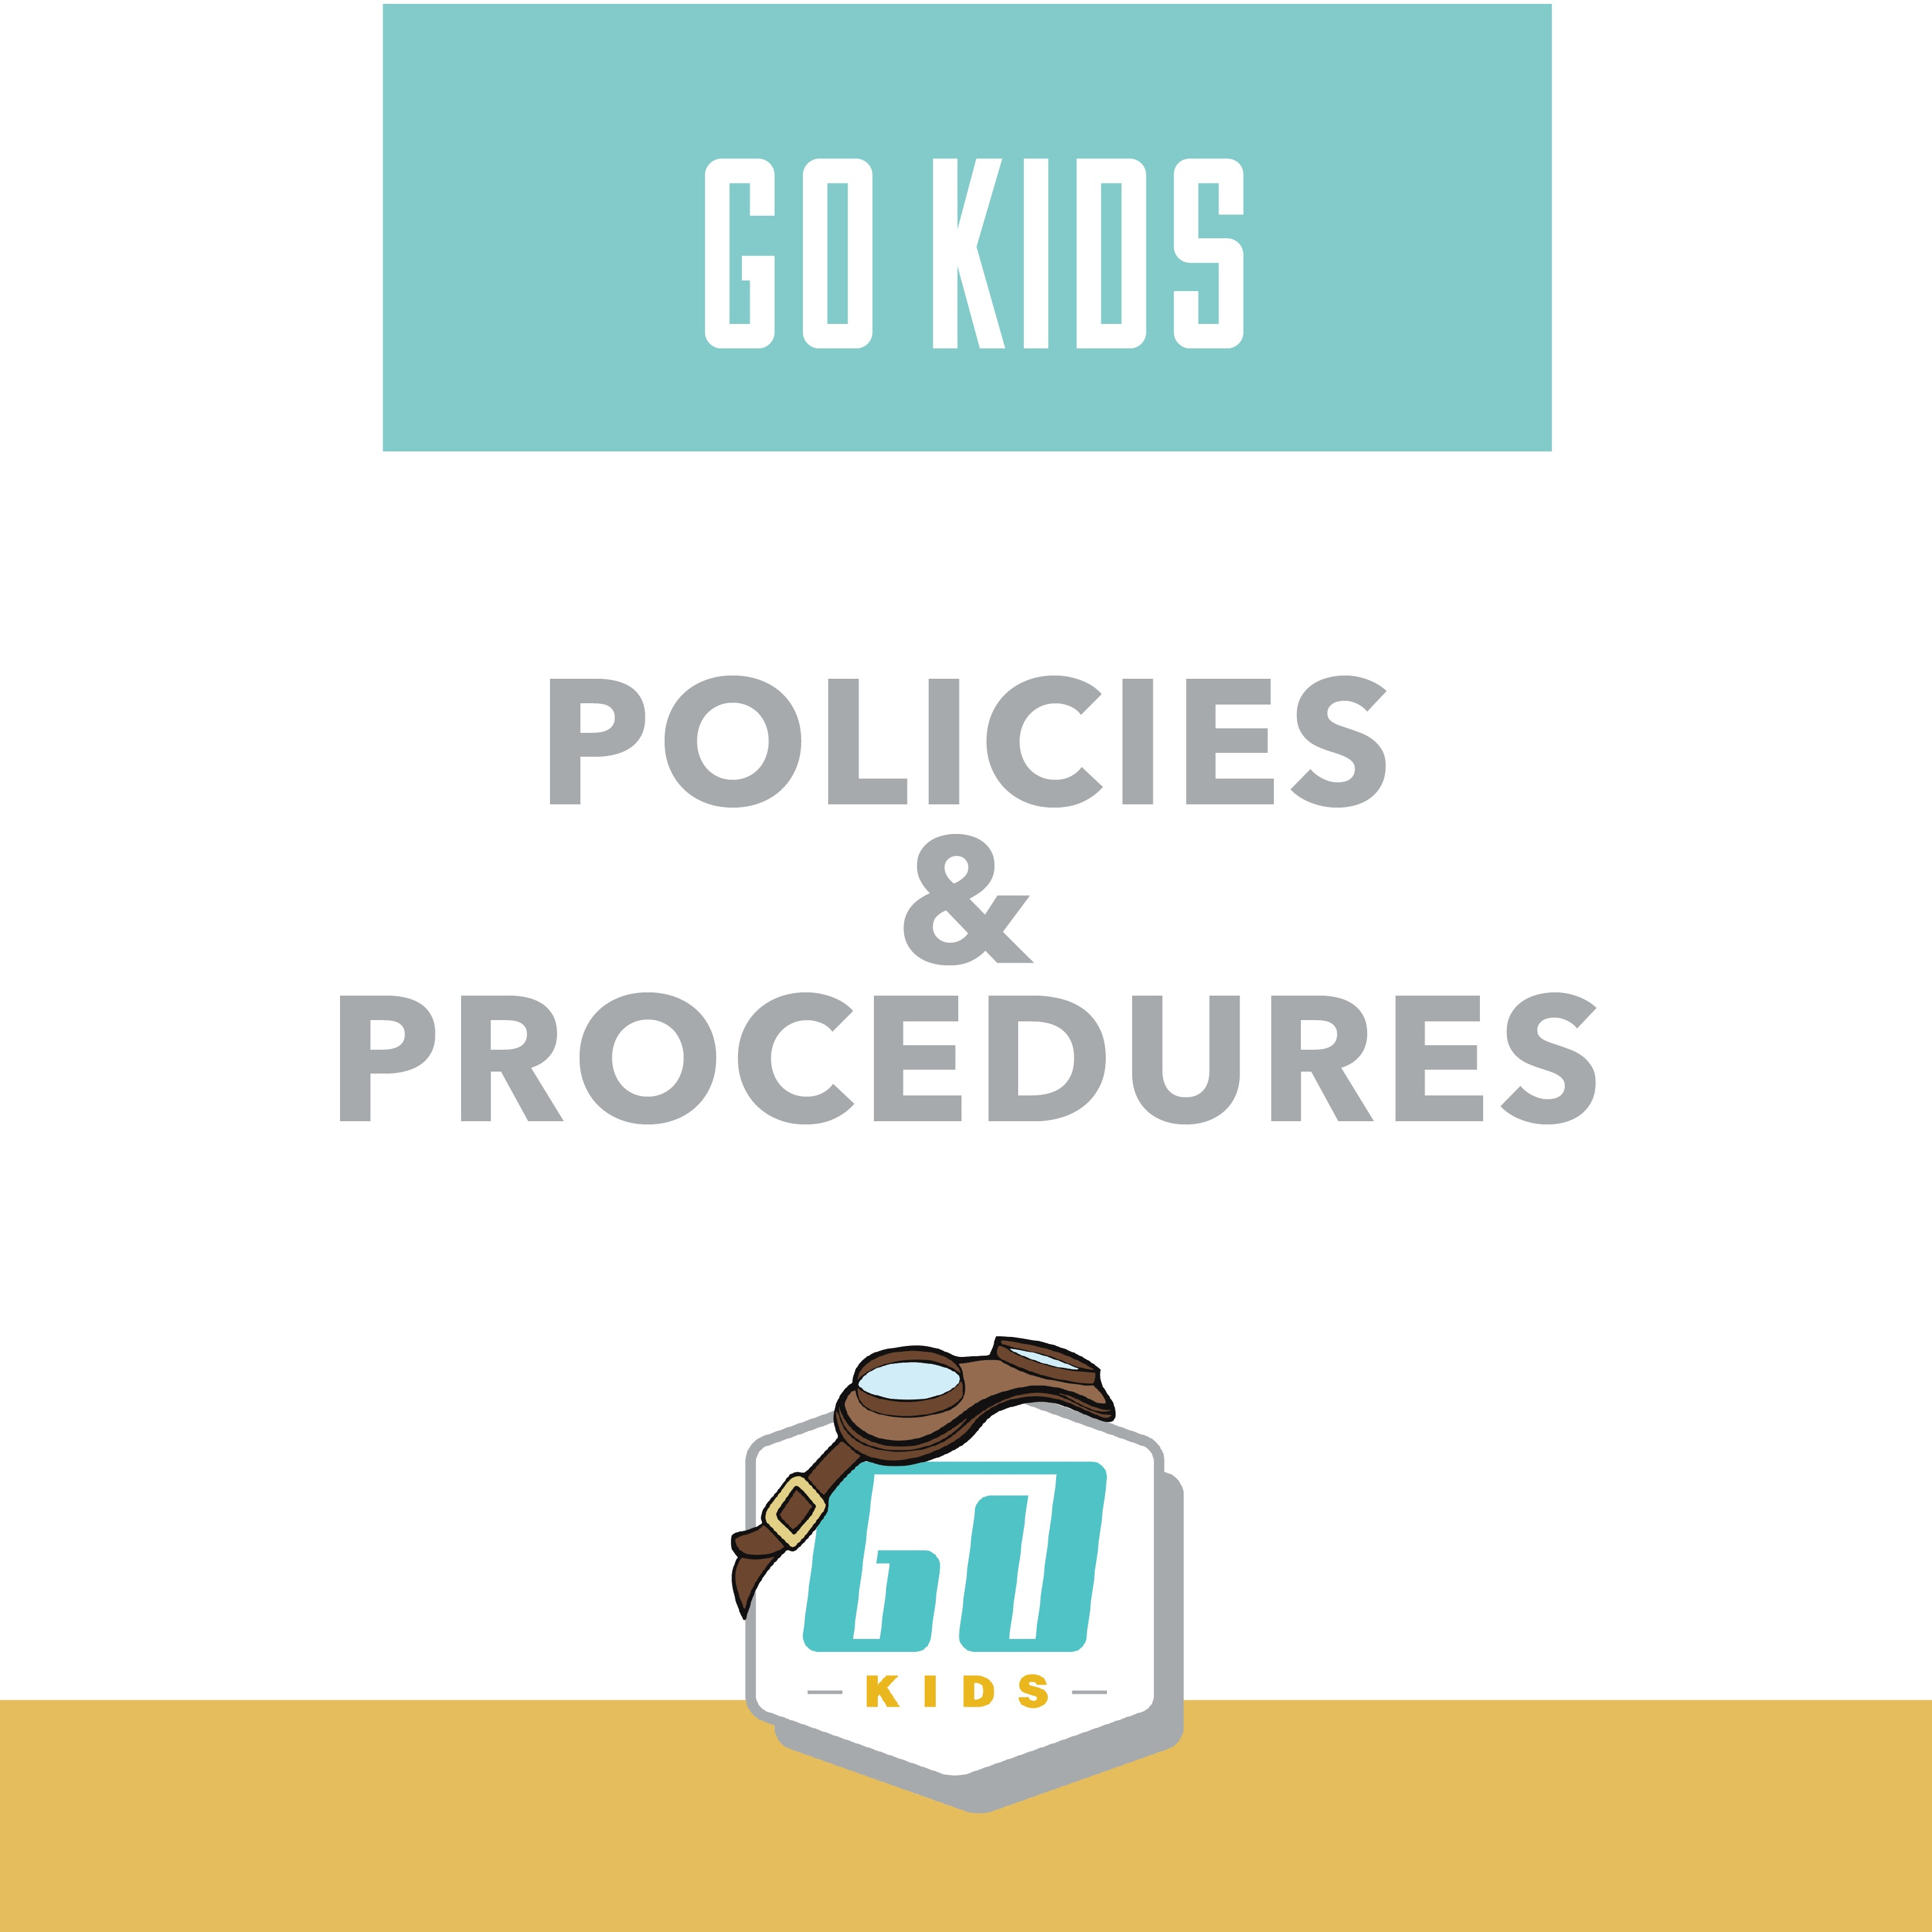 Policies and Procedures - Go Kids